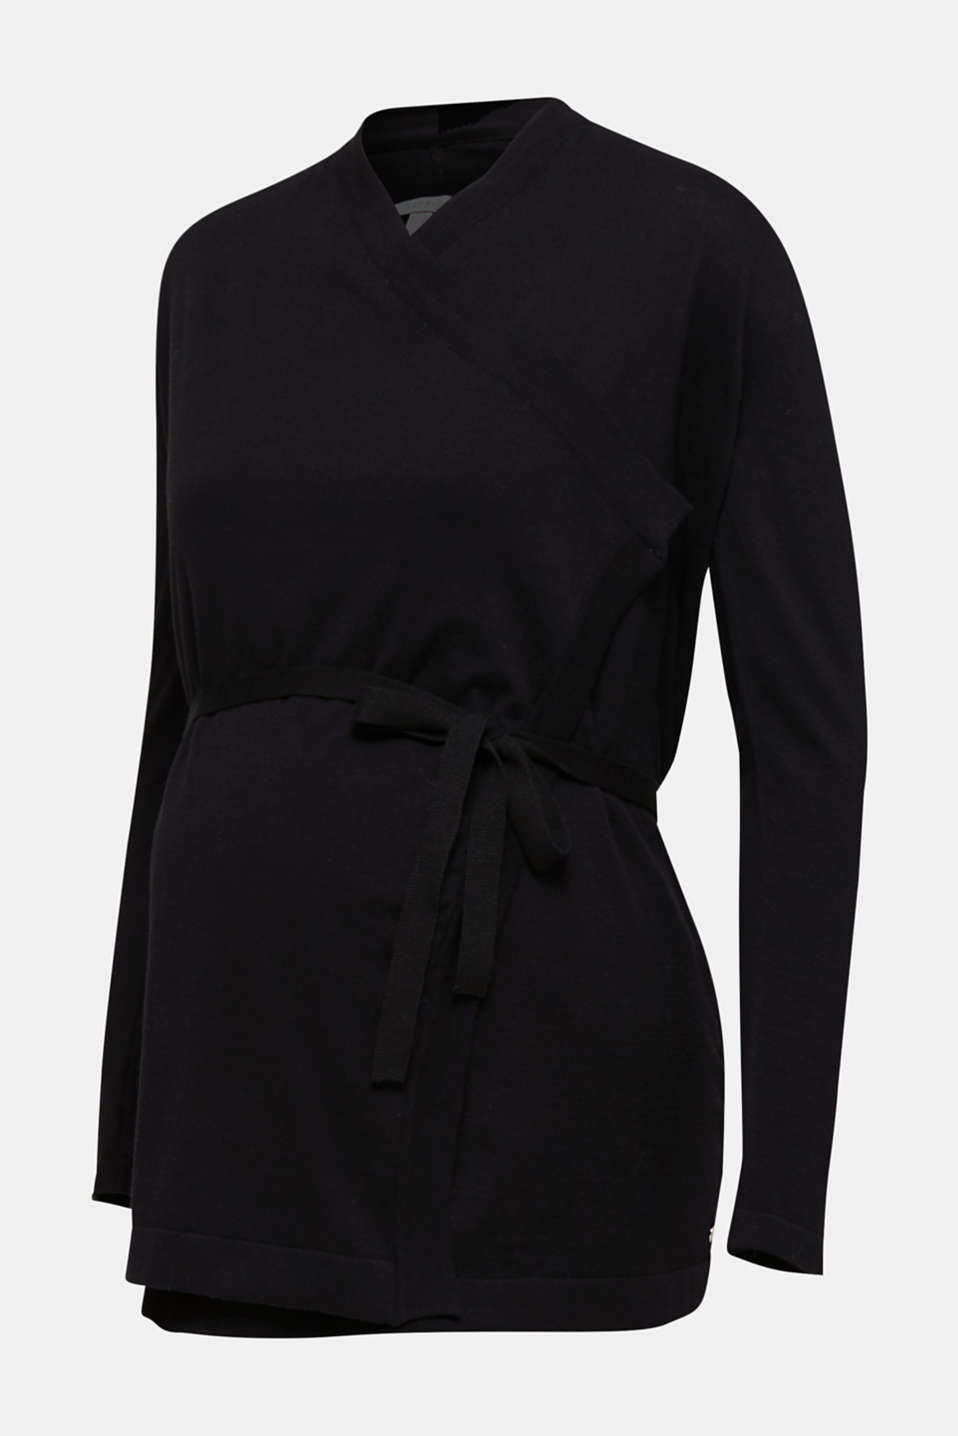 Cardigan with a tie-around belt, 100% cotton, LCBLACK, detail image number 7